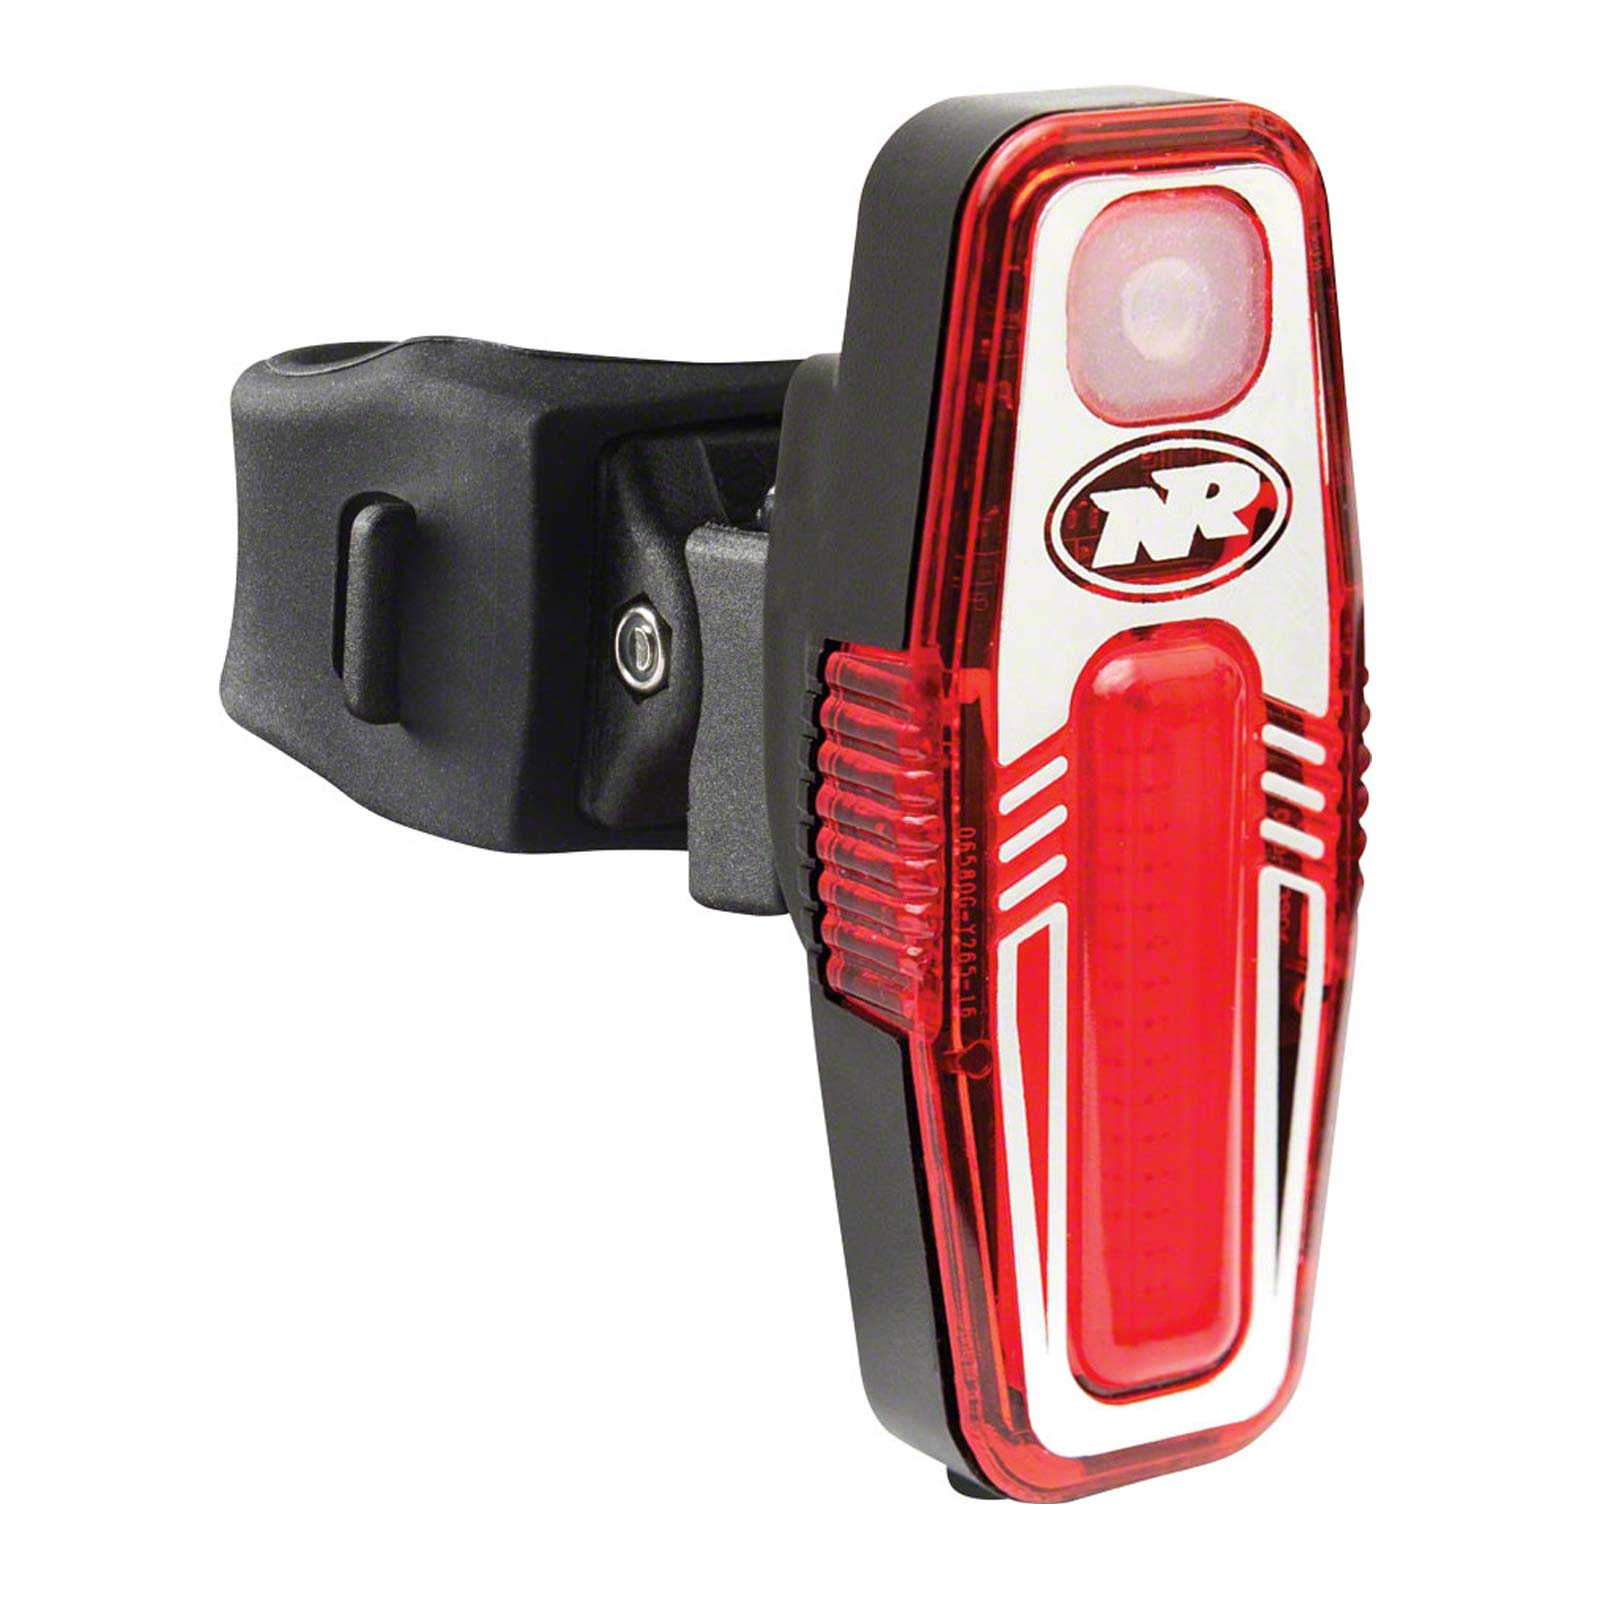 NiteRider Sabre 80 Rechargeable Bicycle Taillight